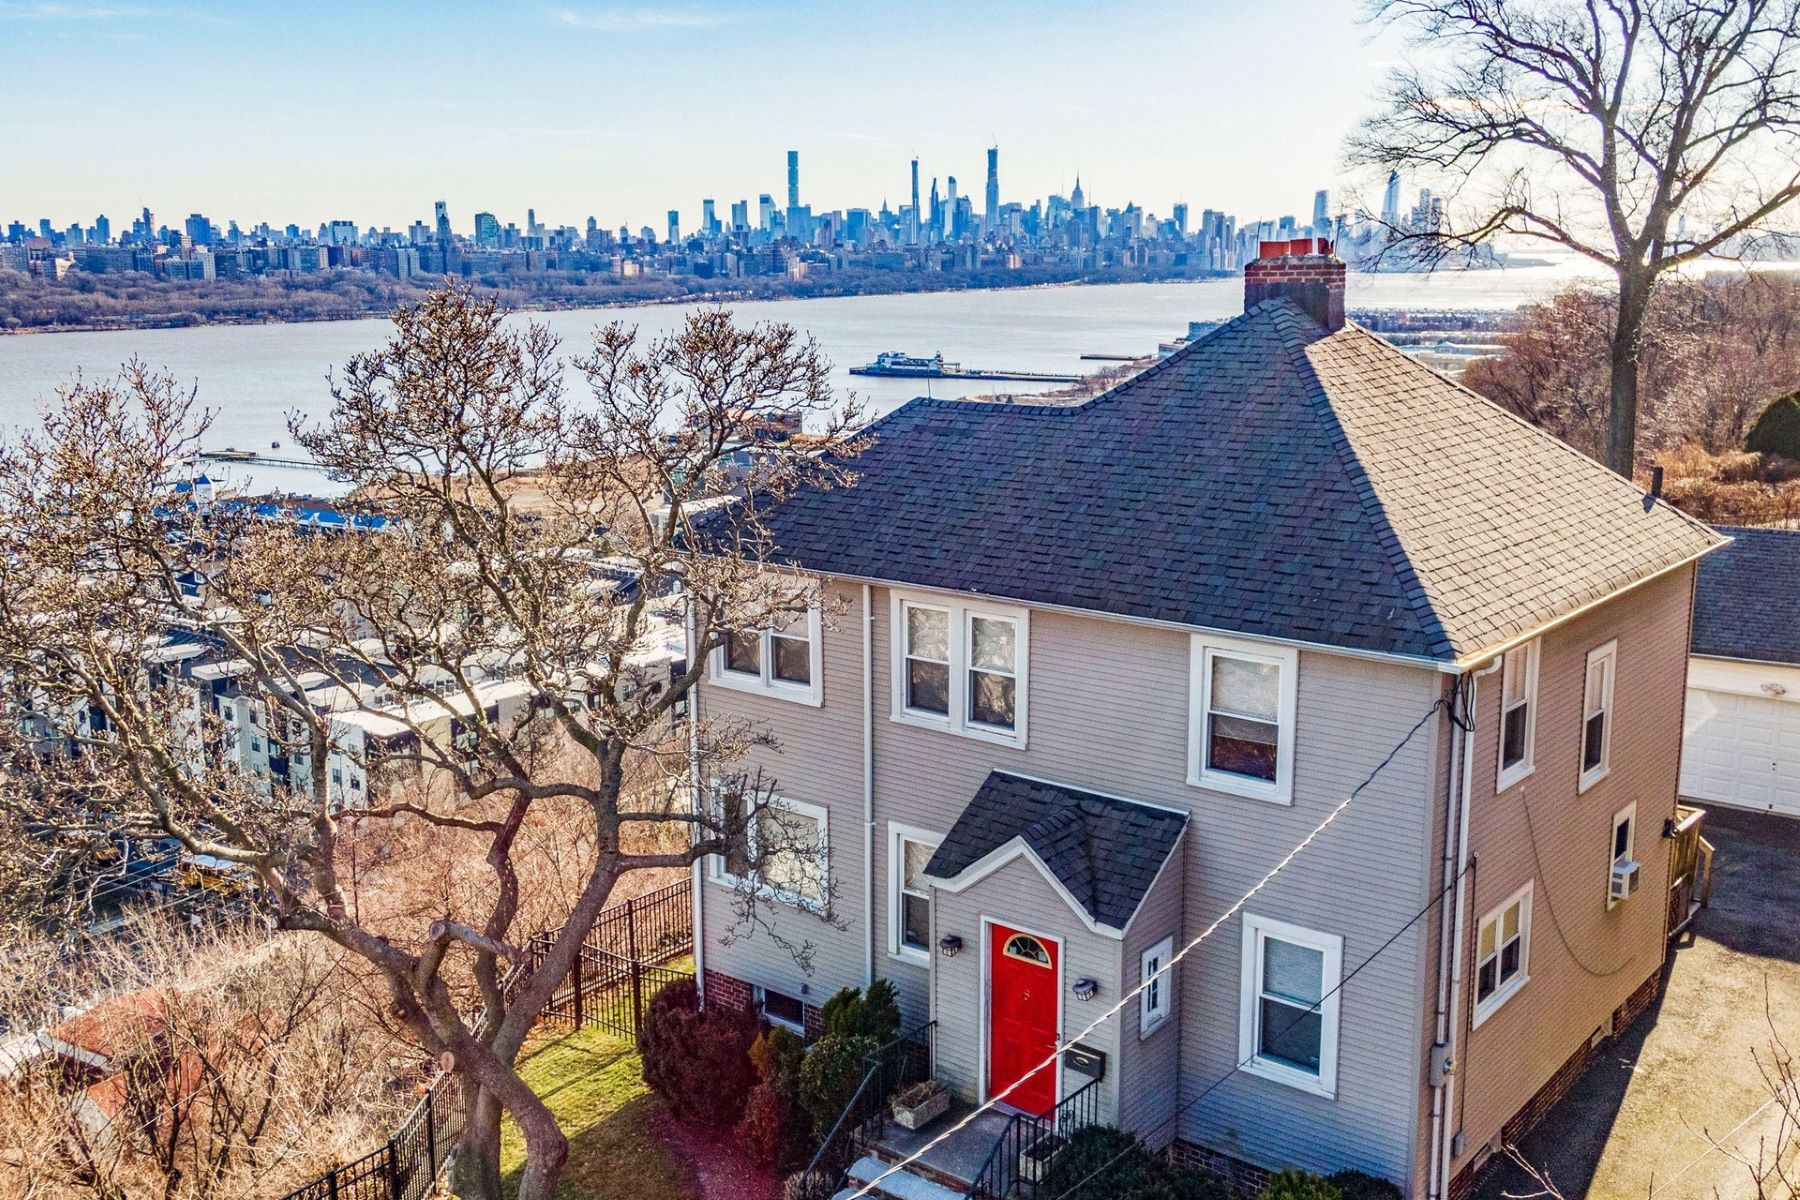 Single Family Home for Sale at Location! Location! Location! 6 Columbia Avenue, Cliffside Park, New Jersey 07010 United States